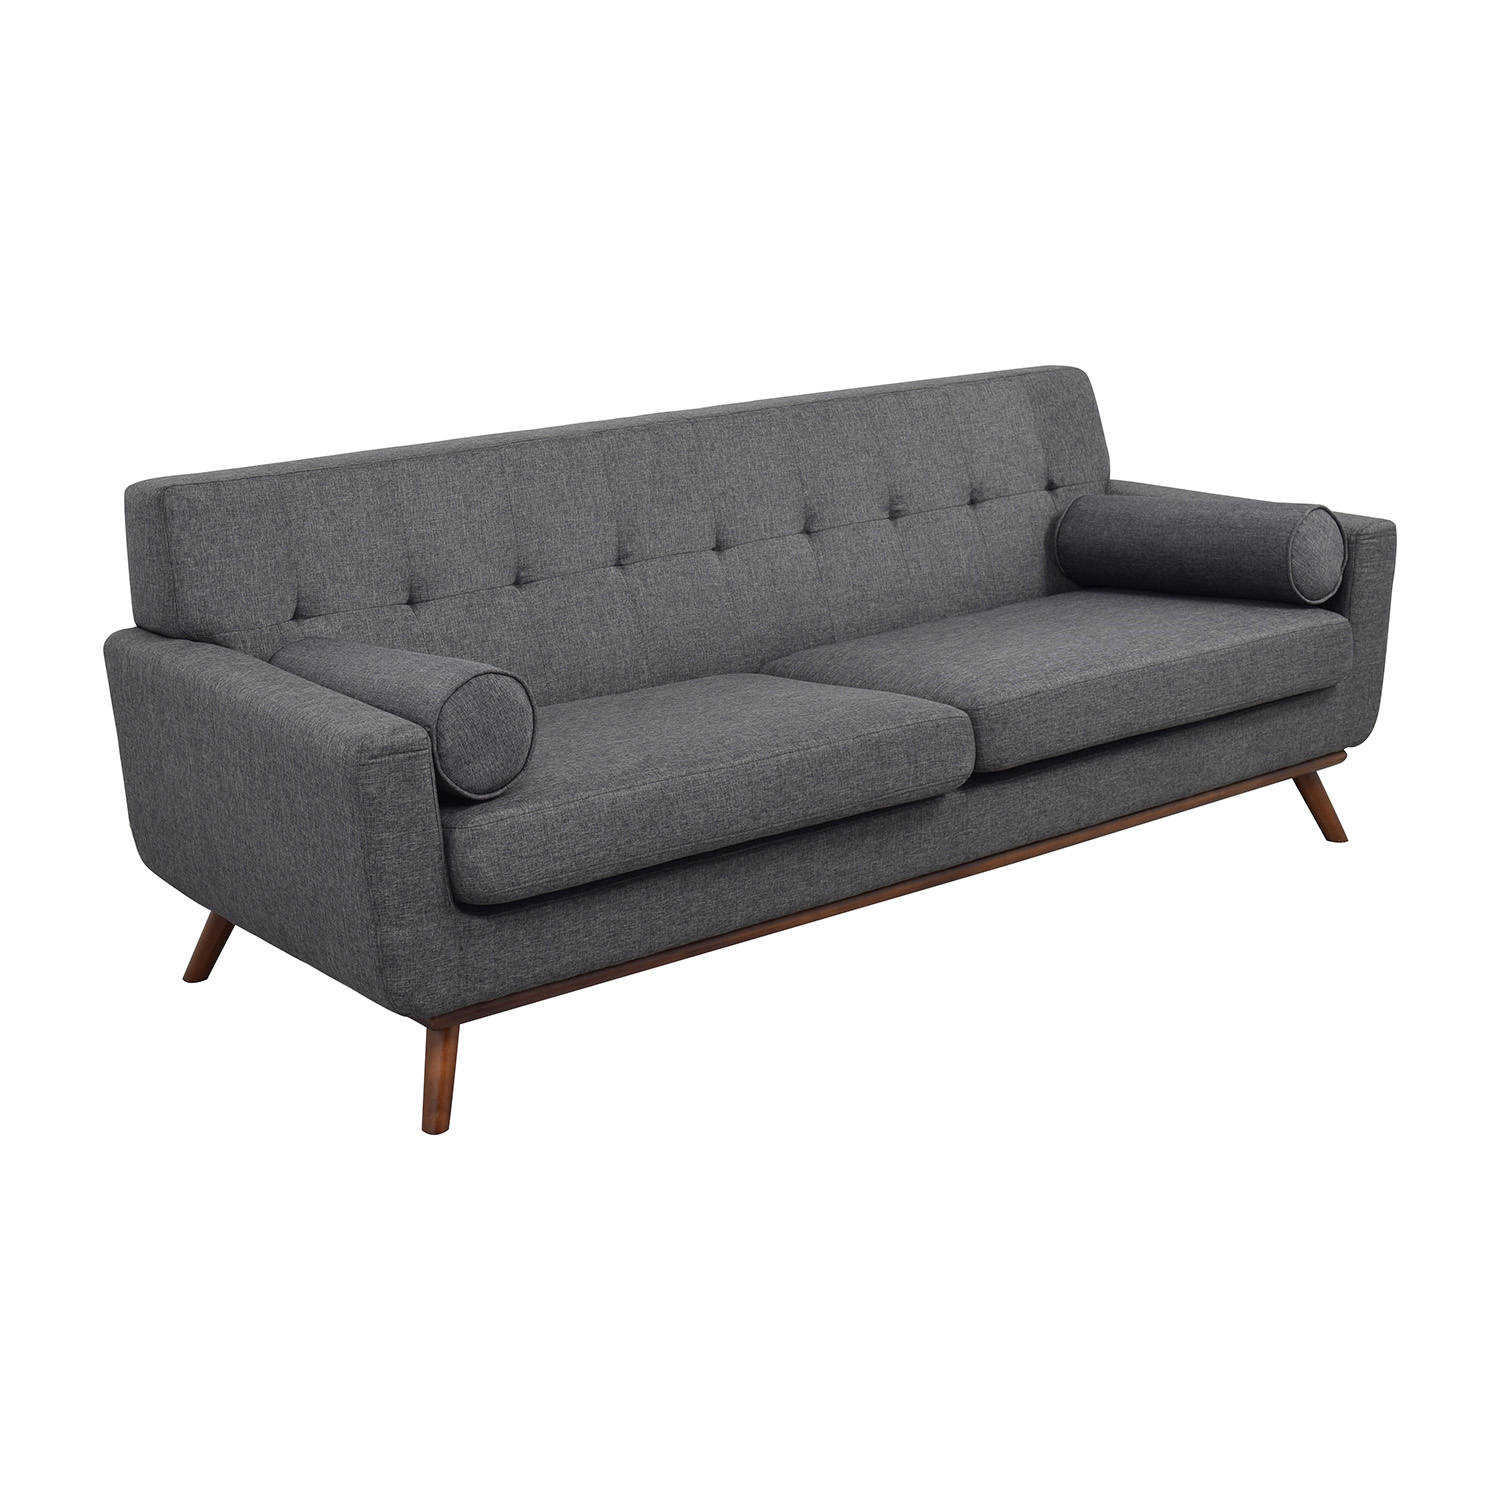 buy Inmod Charcoal Grey Tufted Lars Sofa with Pillows Inmod Sofas